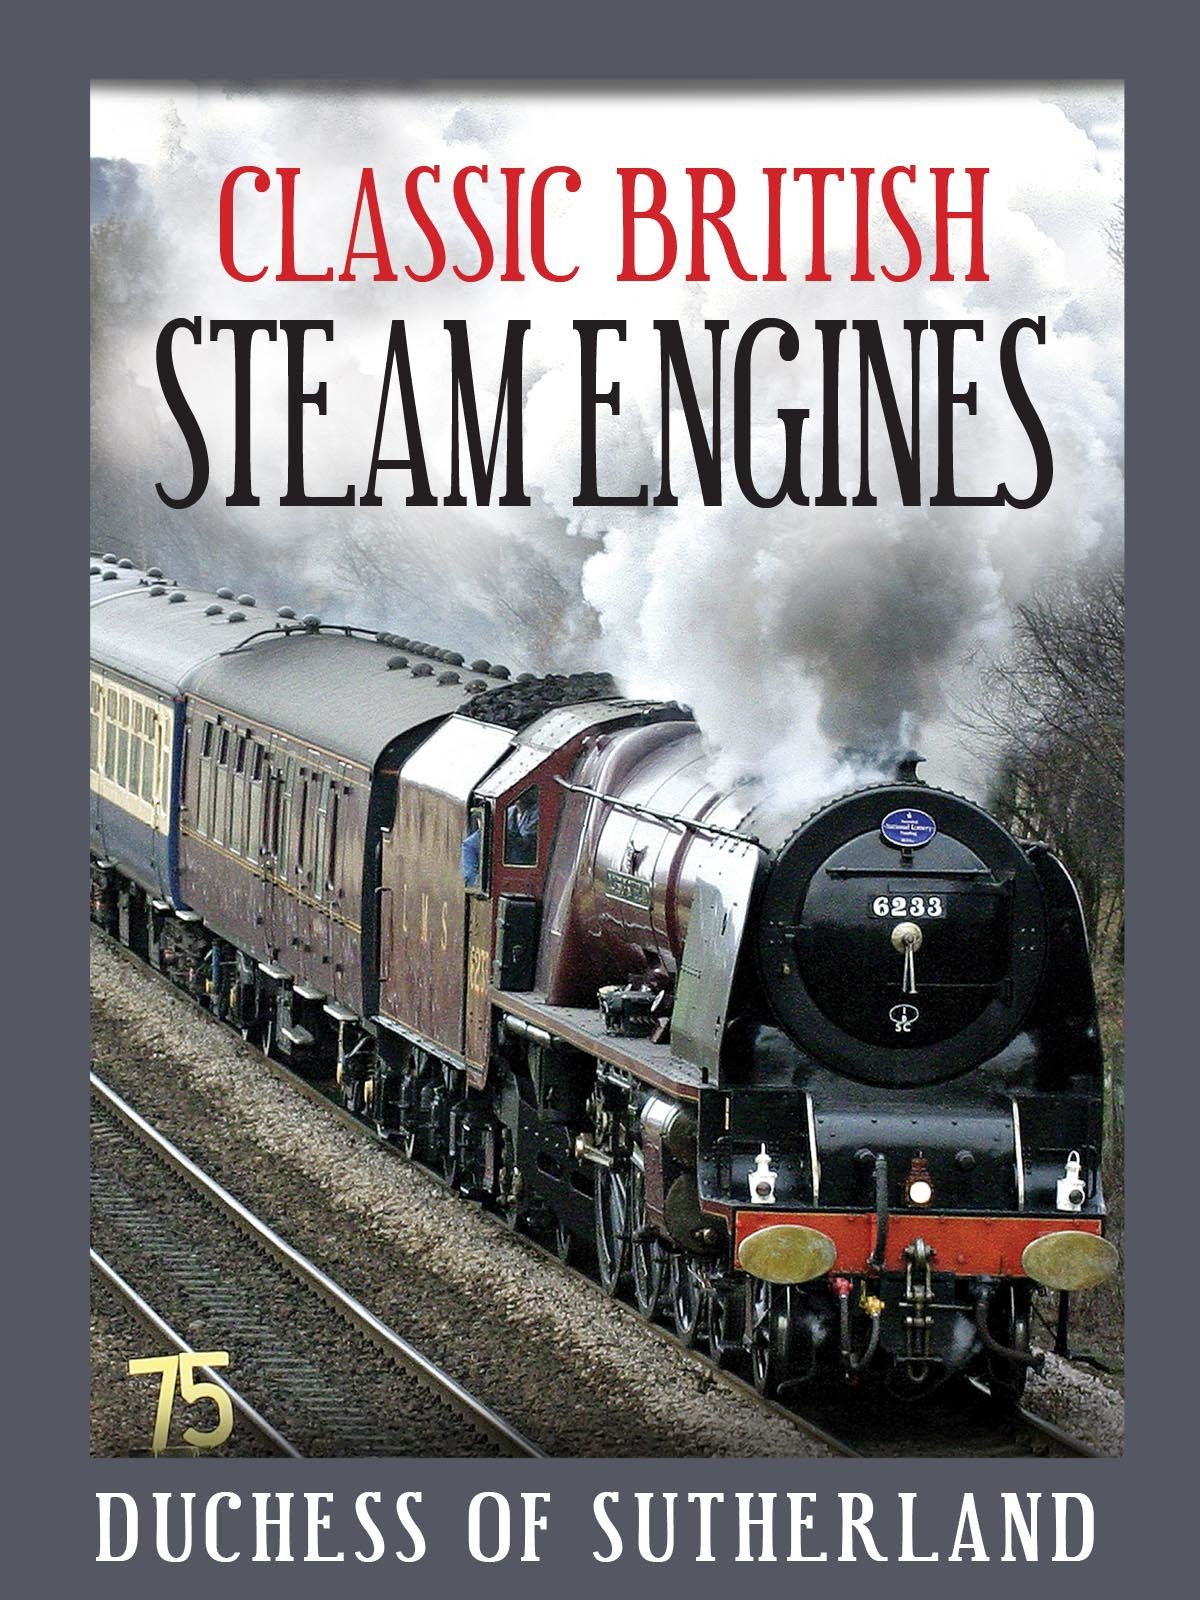 Classic British Steam Engines: Duchess Of Sutherland